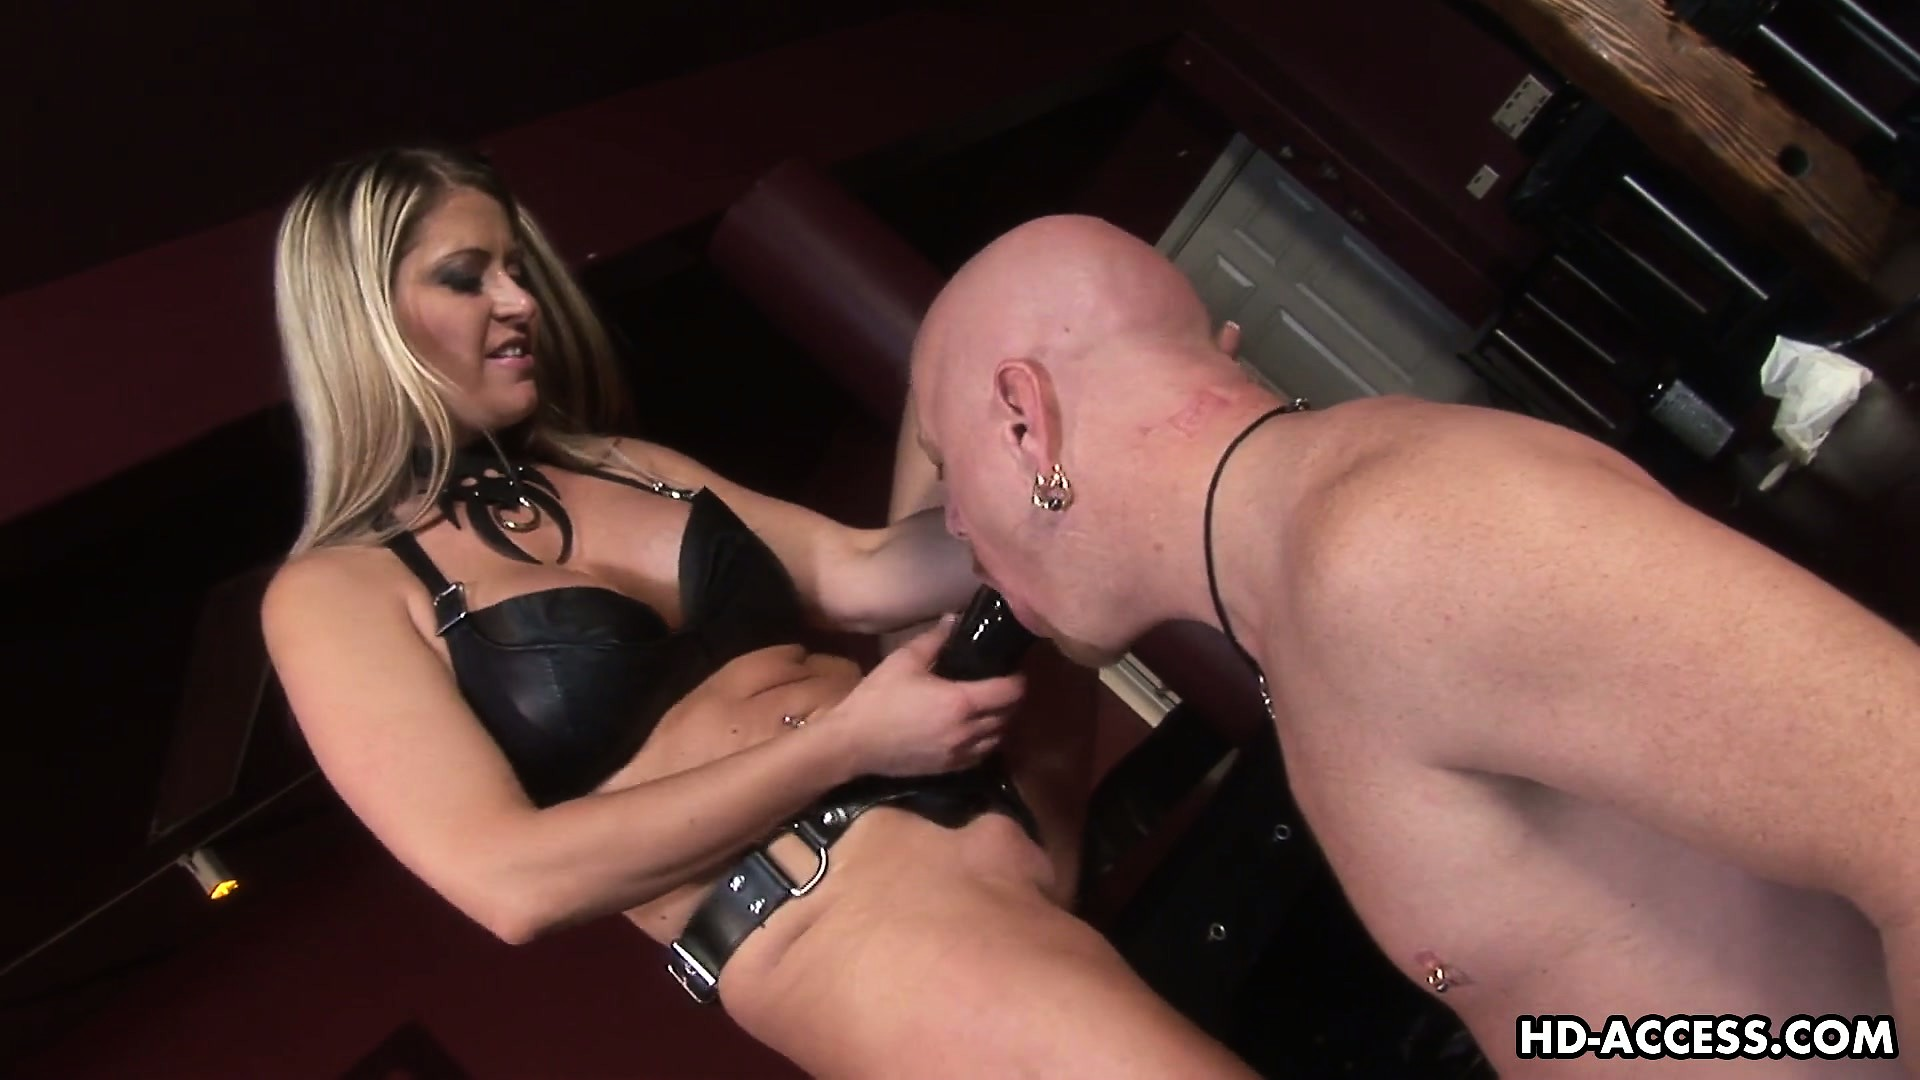 Porno Video of Mistress Nicholette Takes A Quick Ride On Her Slave's Dick Before Destroying The Guy's Ass